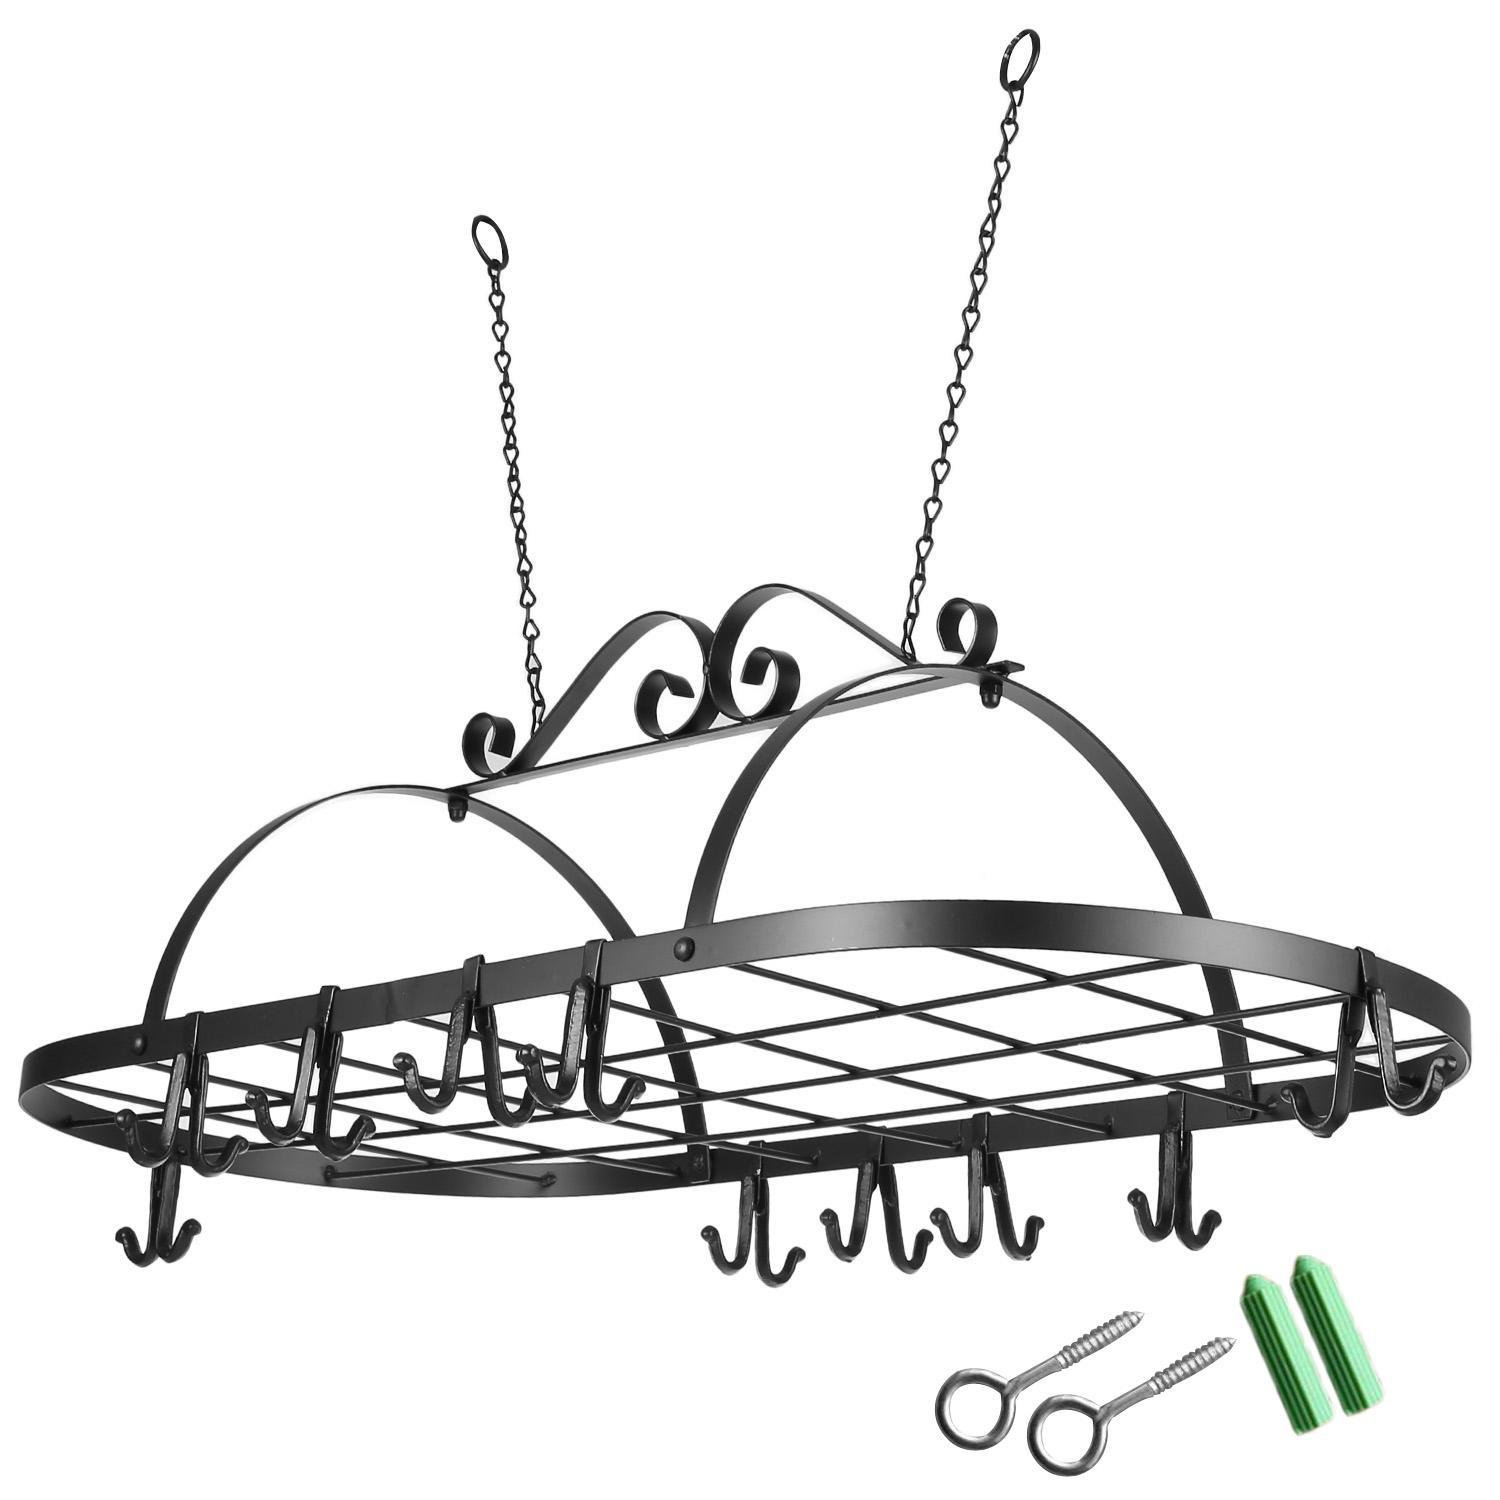 Pot Rack Hanger, Iron Pan Rack with 10 Hooks - Wall Hanger or Ceiling Mounted